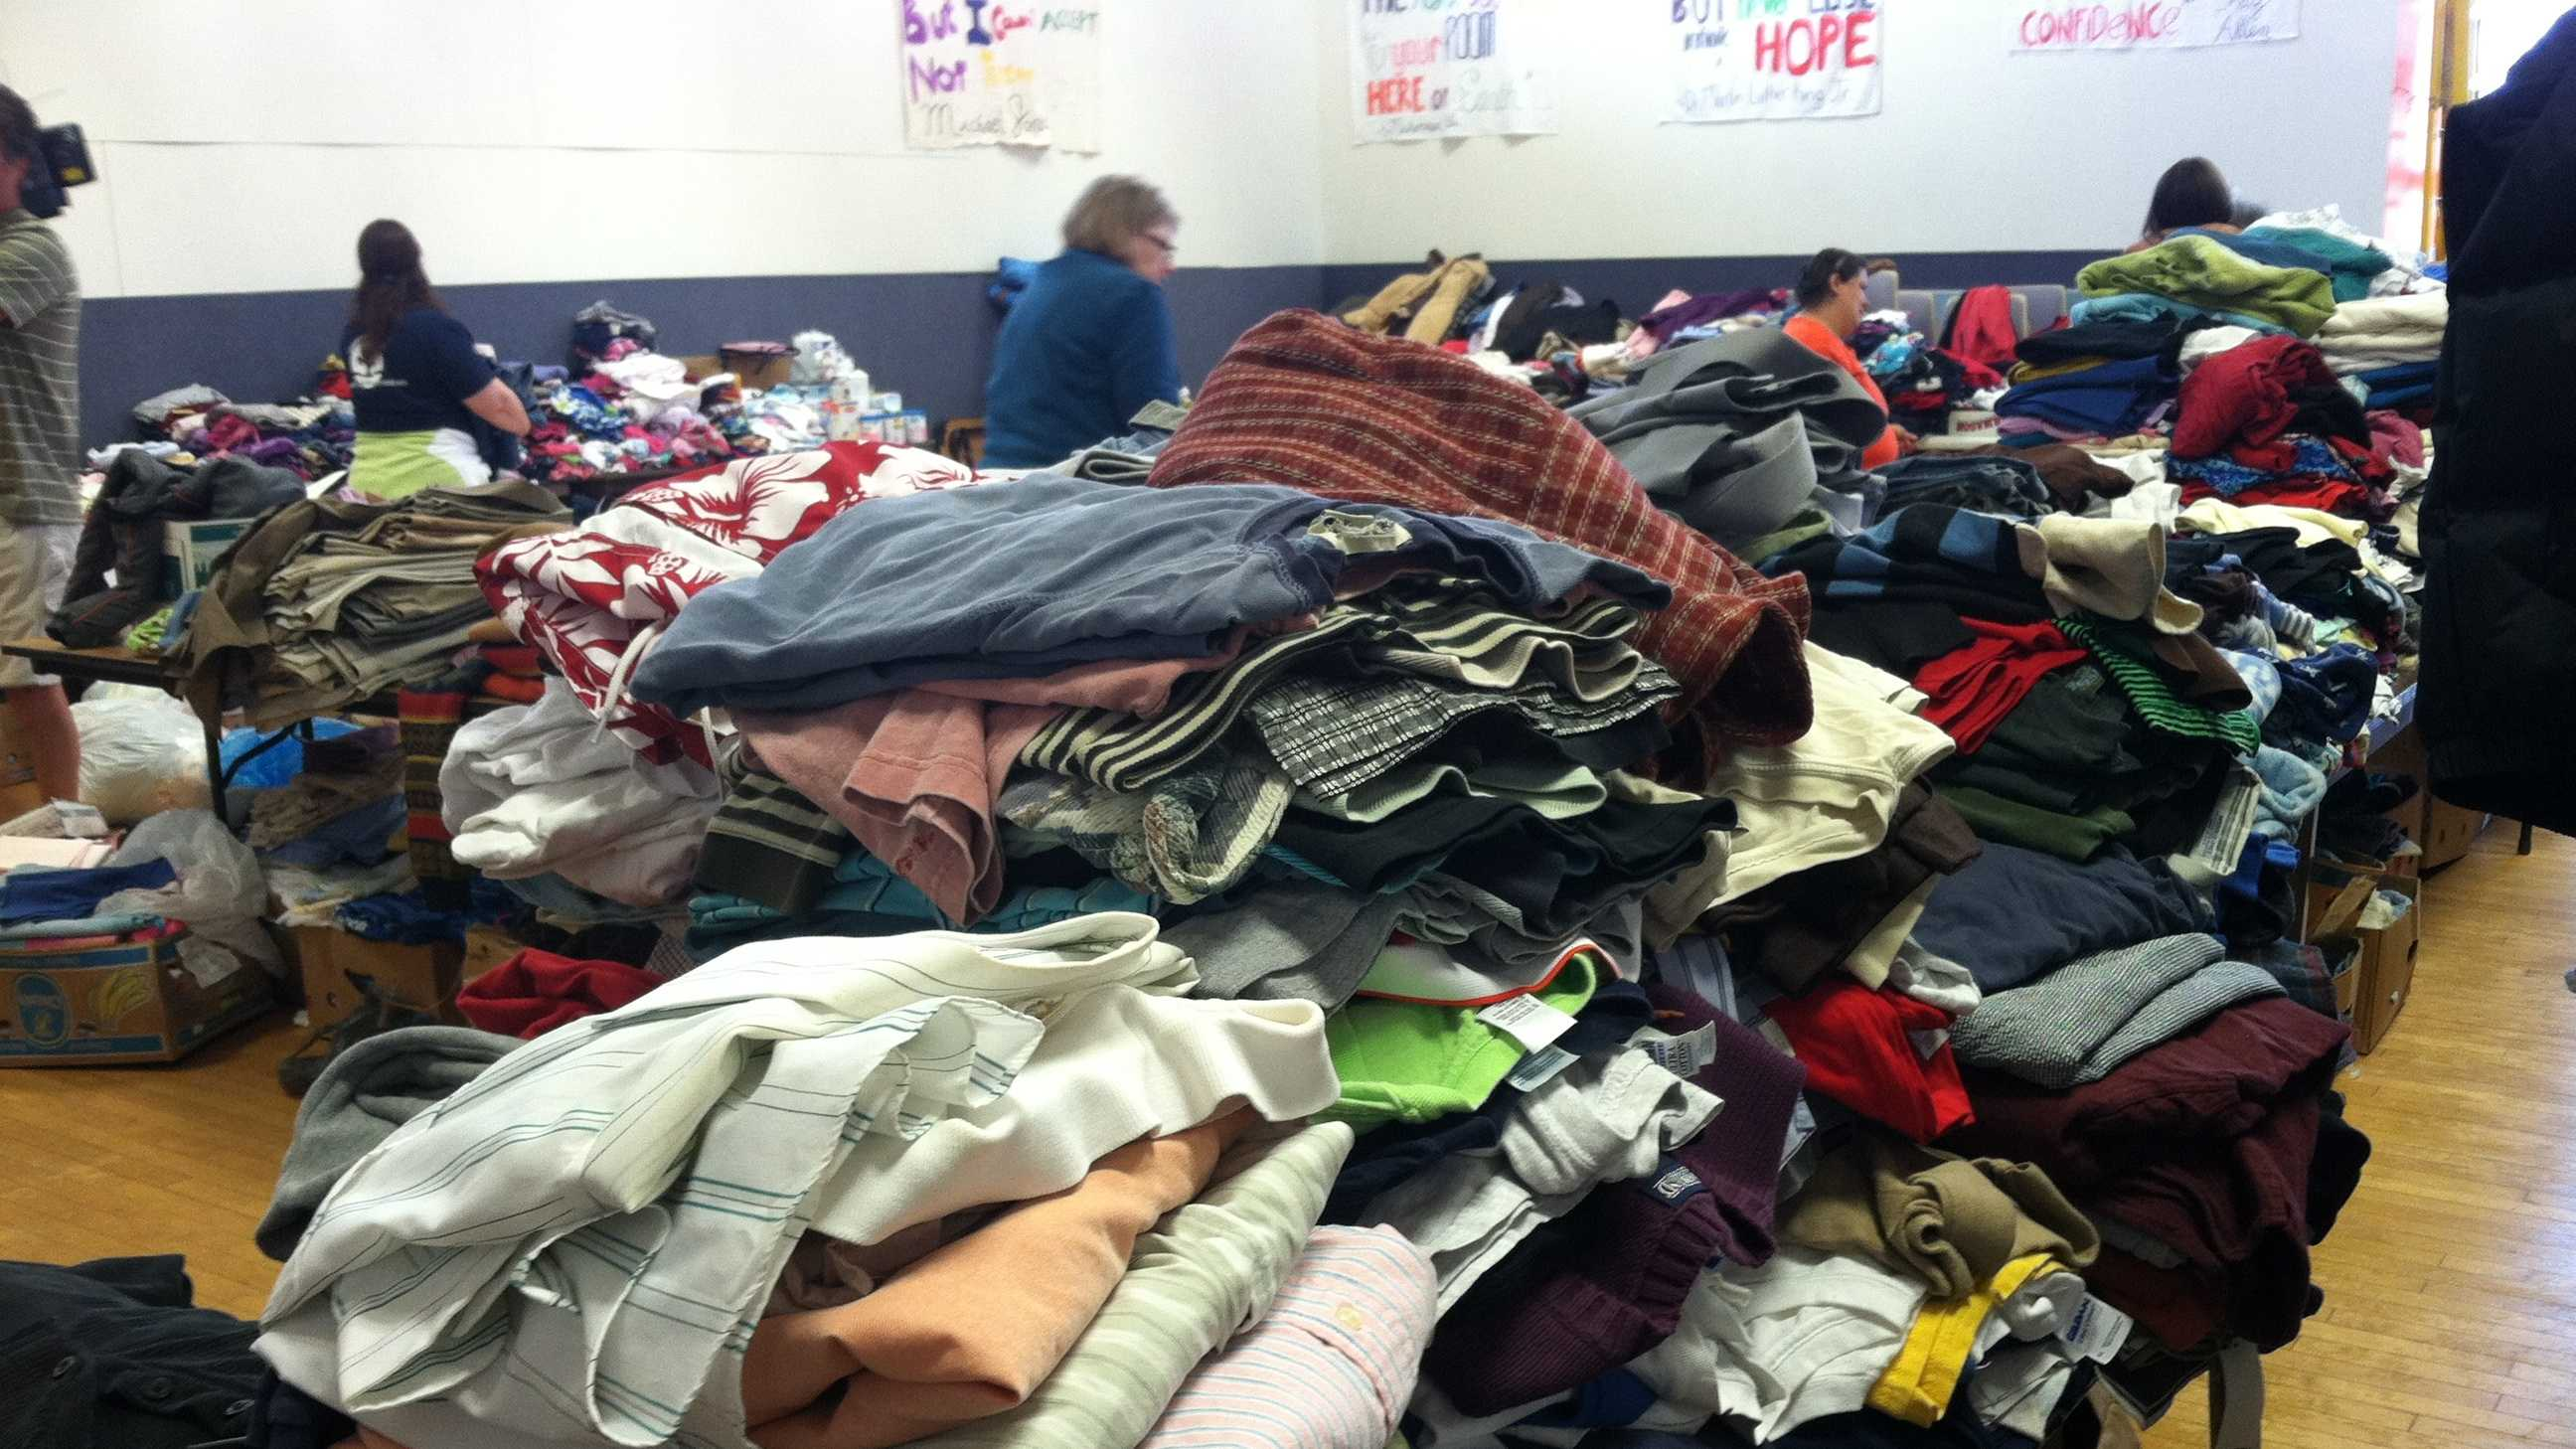 The YWCA says donations have poured in for Lewiston fire donations and they are looking for volunteers to help sort the items. They are also looking for donations of storage totes.